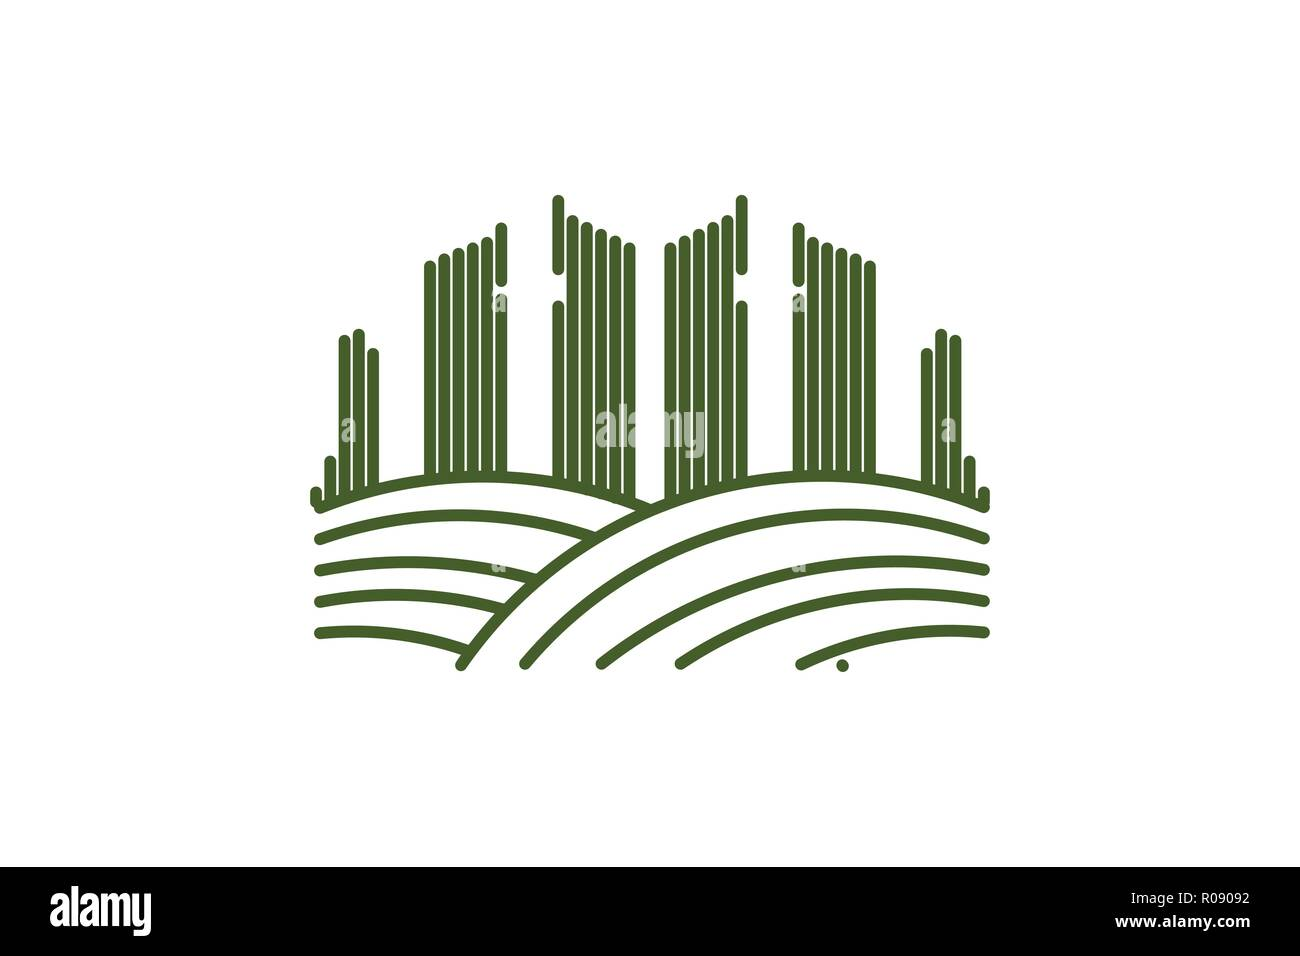 mono line city town landscape logo Designs Inspiration Isolated on White Background - Stock Vector